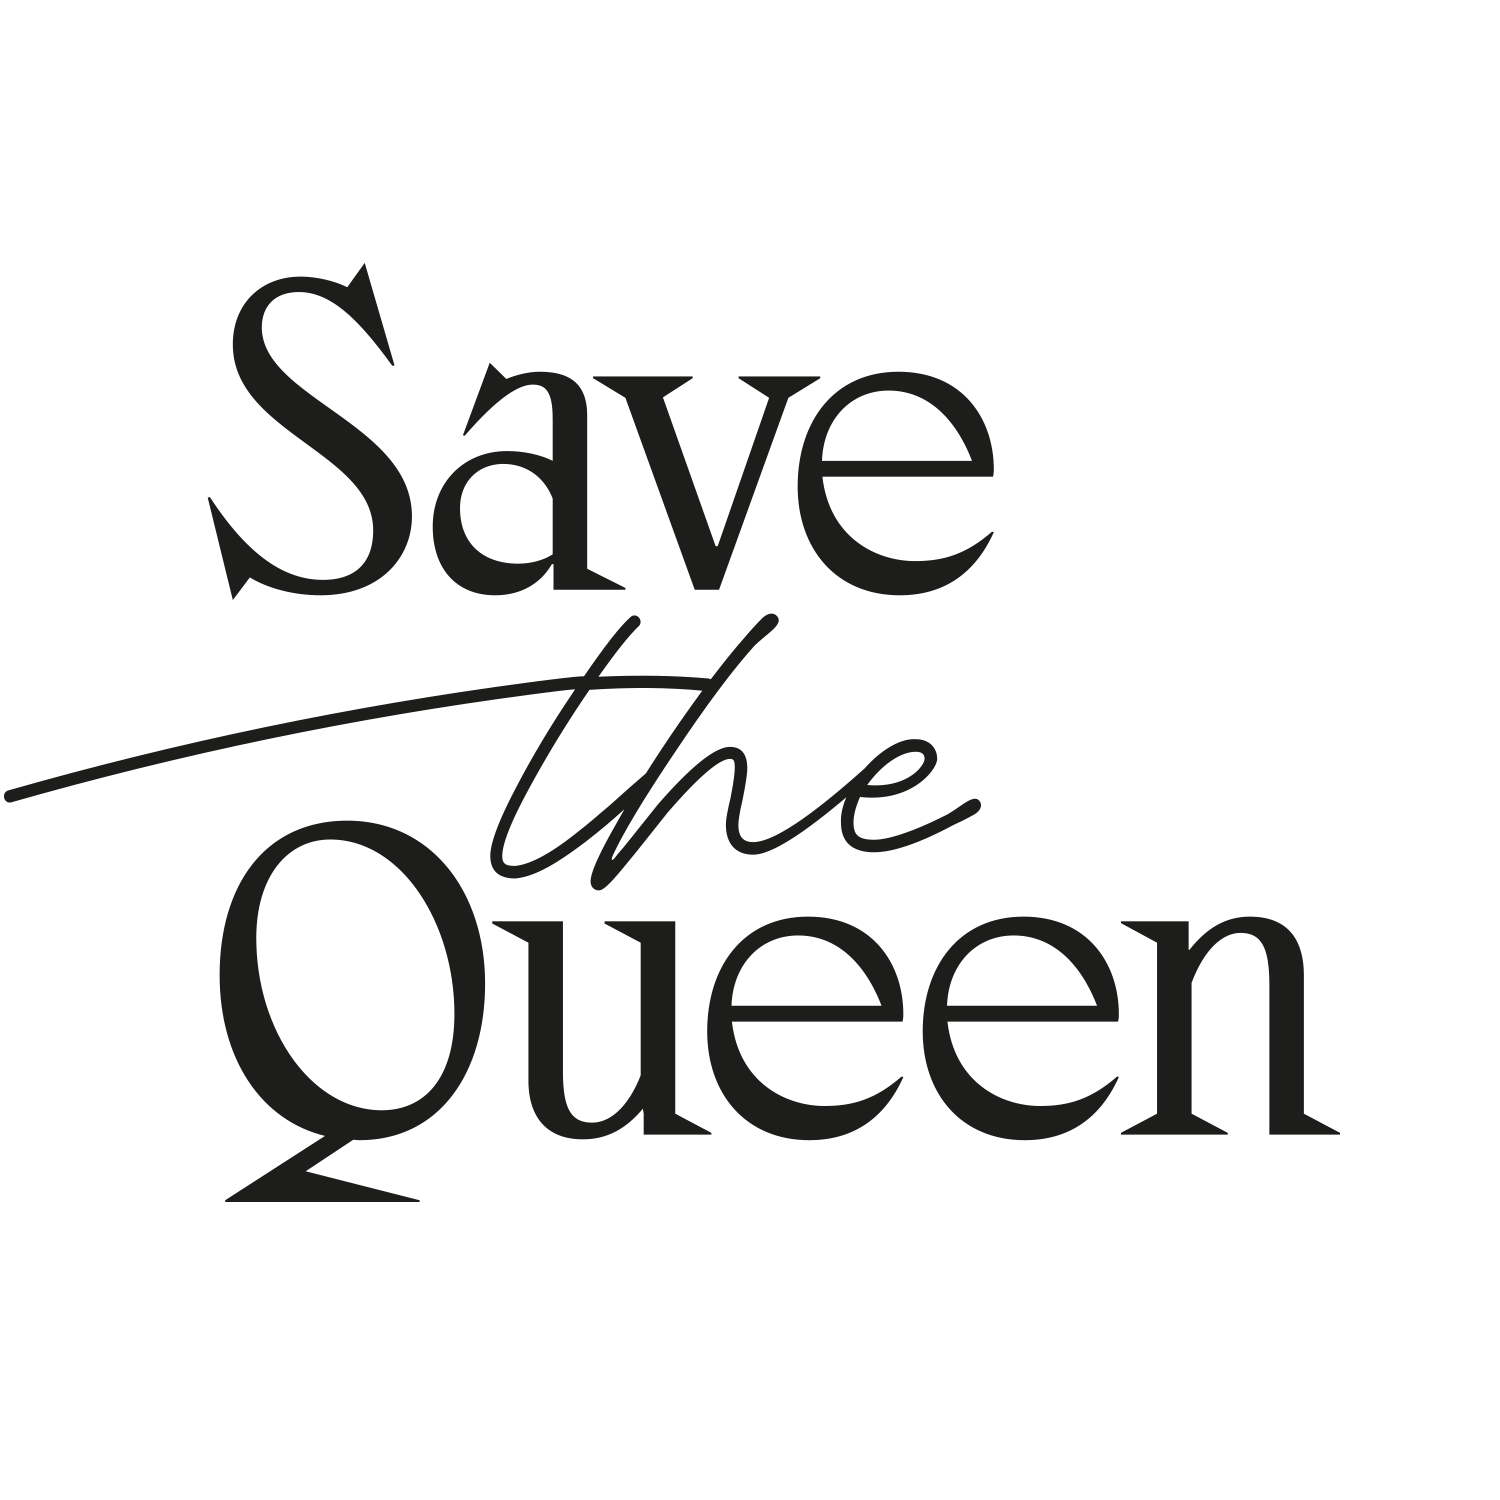 Save The Queen Gin